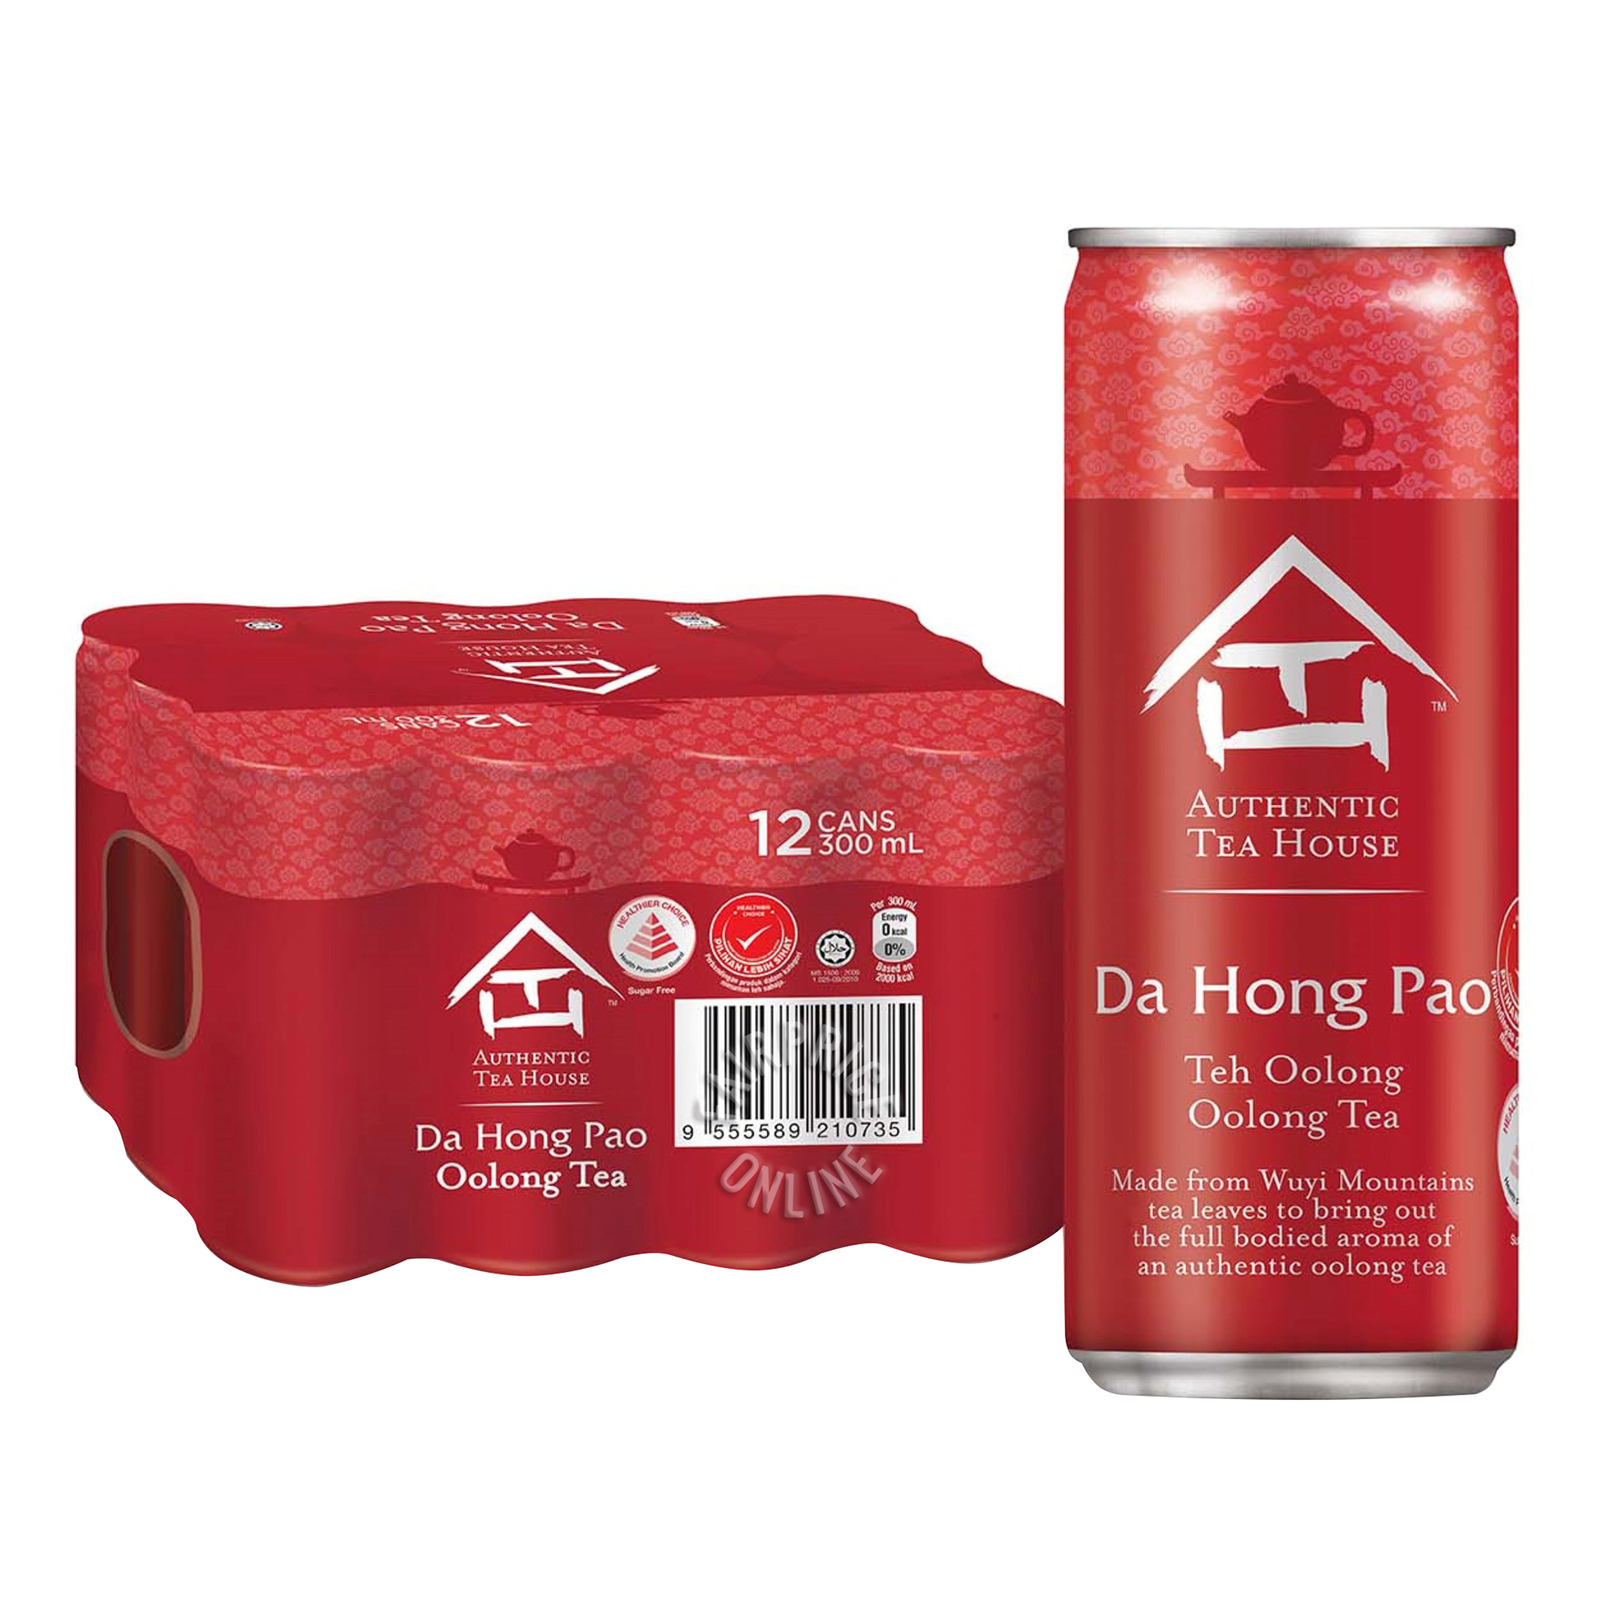 Authentic Tea House Da Hong Pao No Sugar Oolong Tea (12 x 300ml) - Case